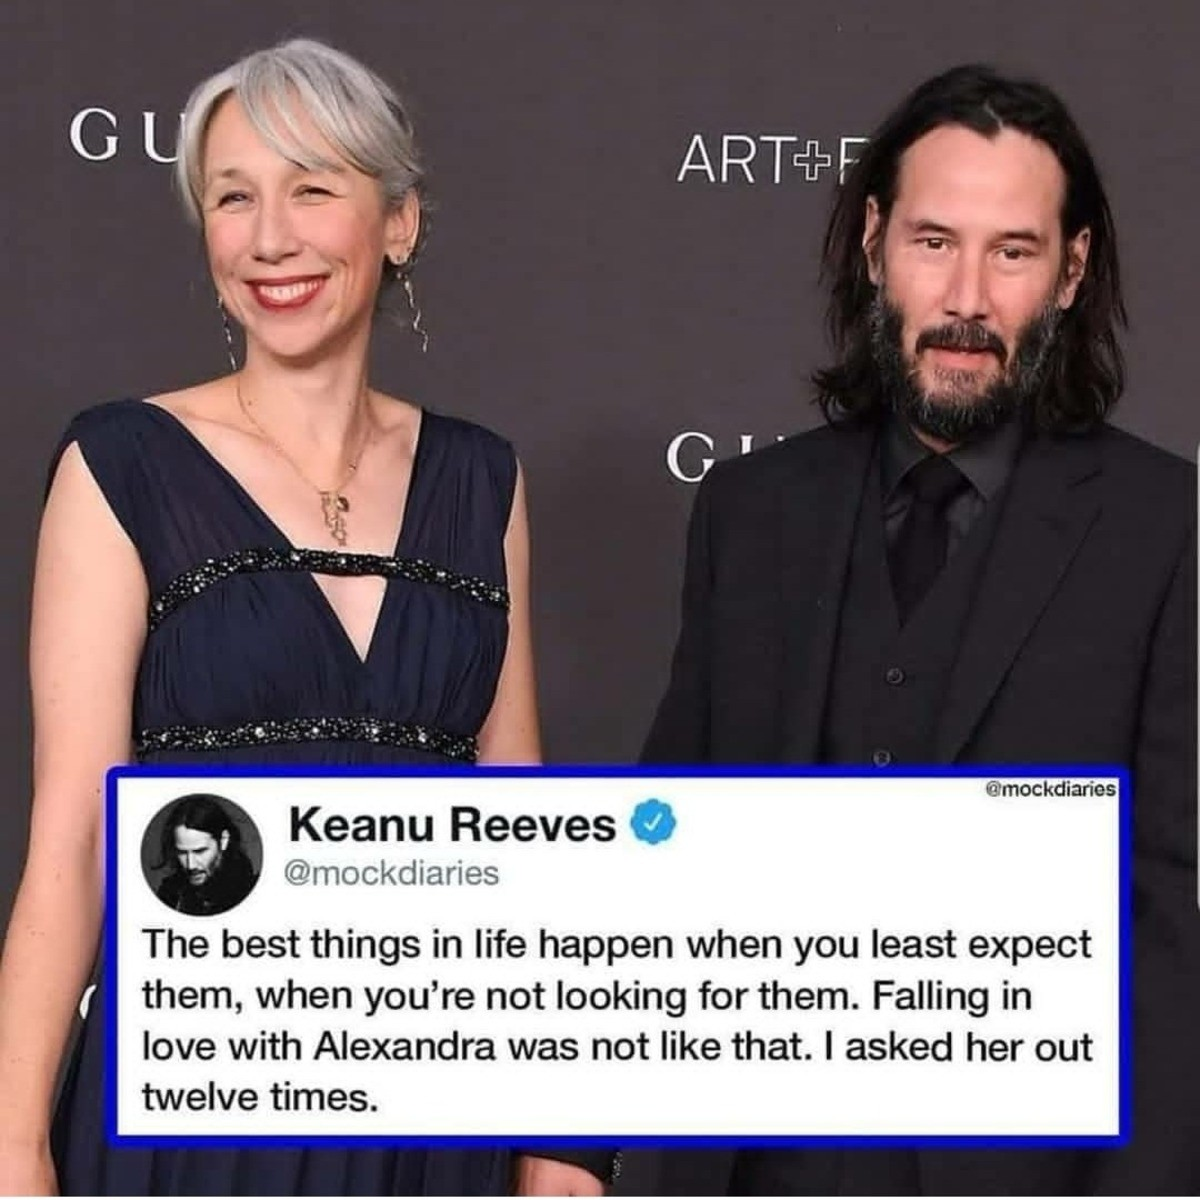 twelve times. .. This bitch turned Keanu Reeves down 11 times Who does she think she is snubbing The Chosen One like thatComment edited at .